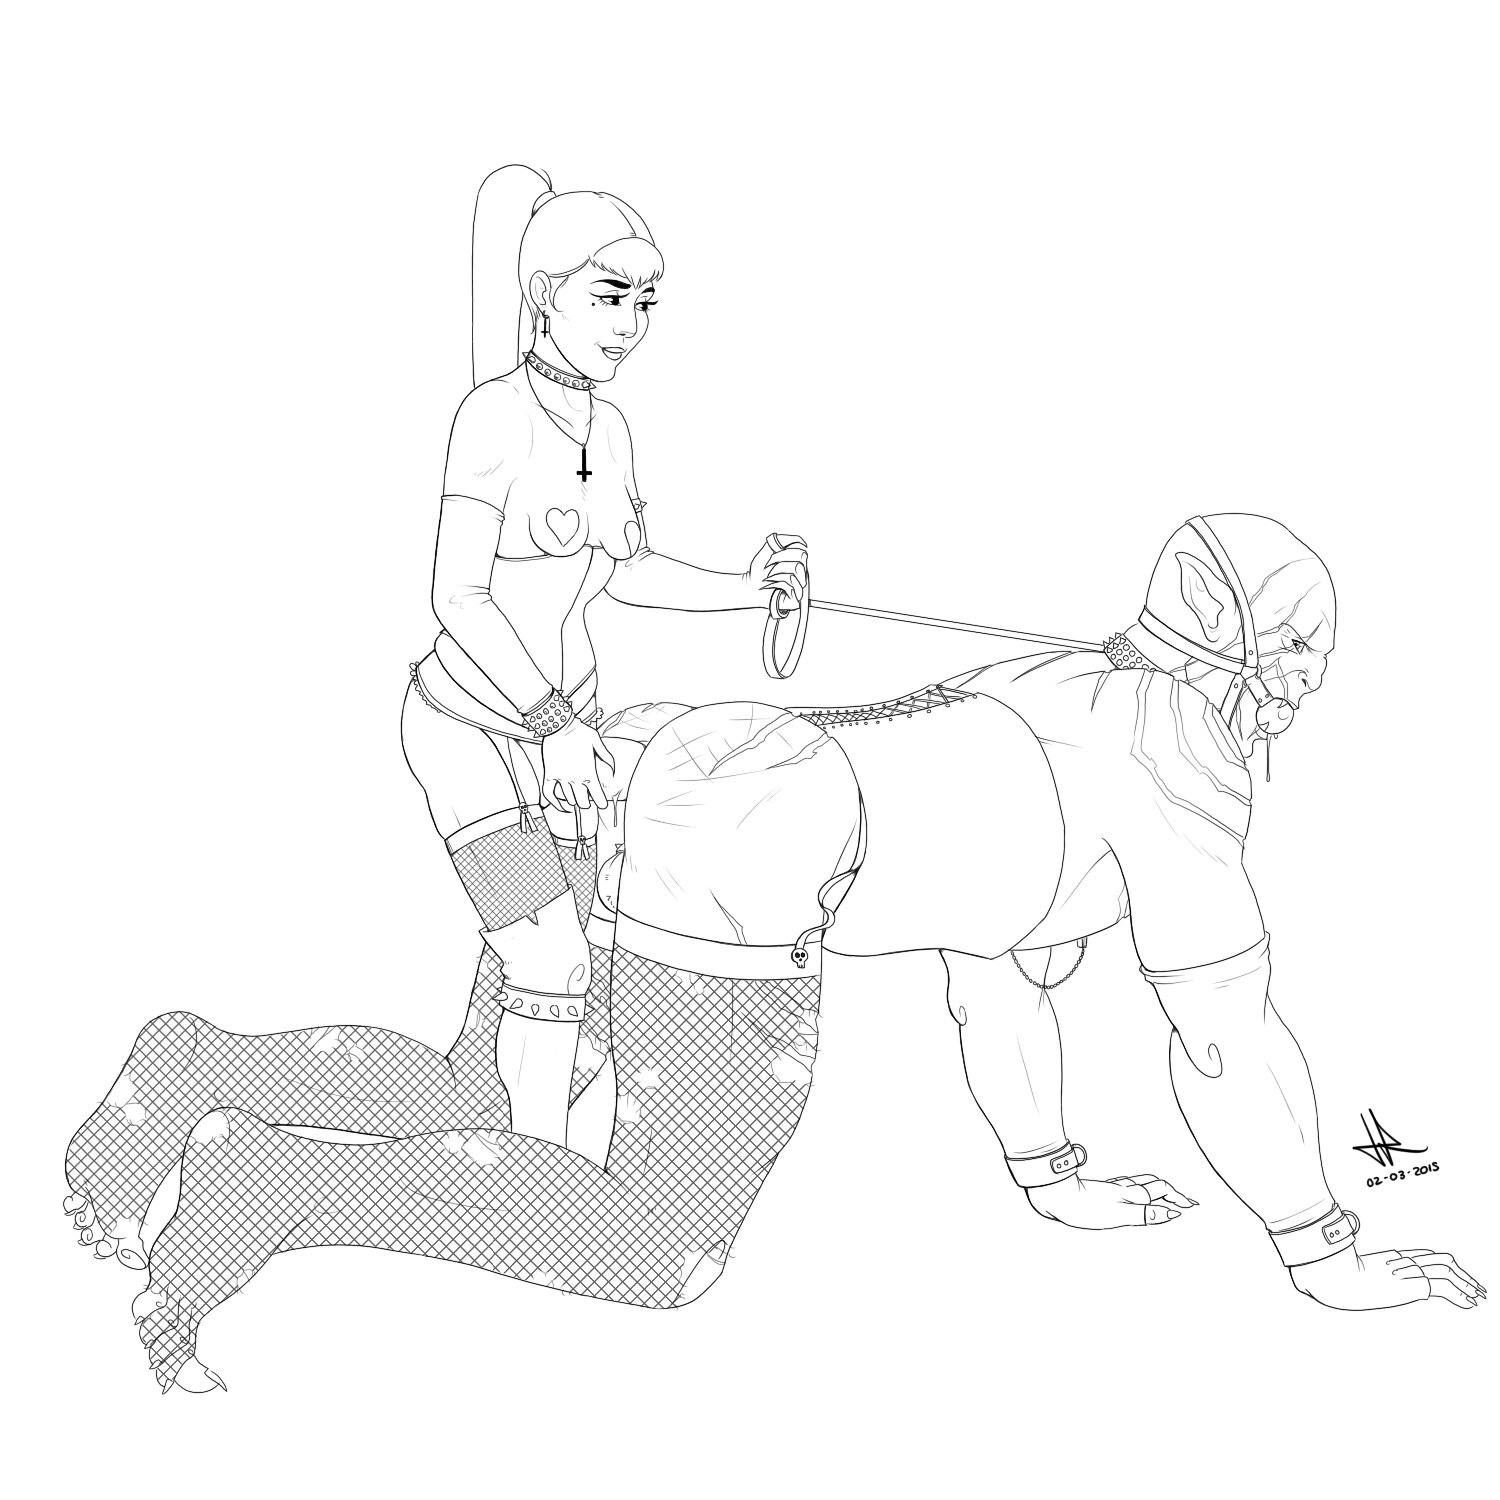 Bdsm drawings naughty